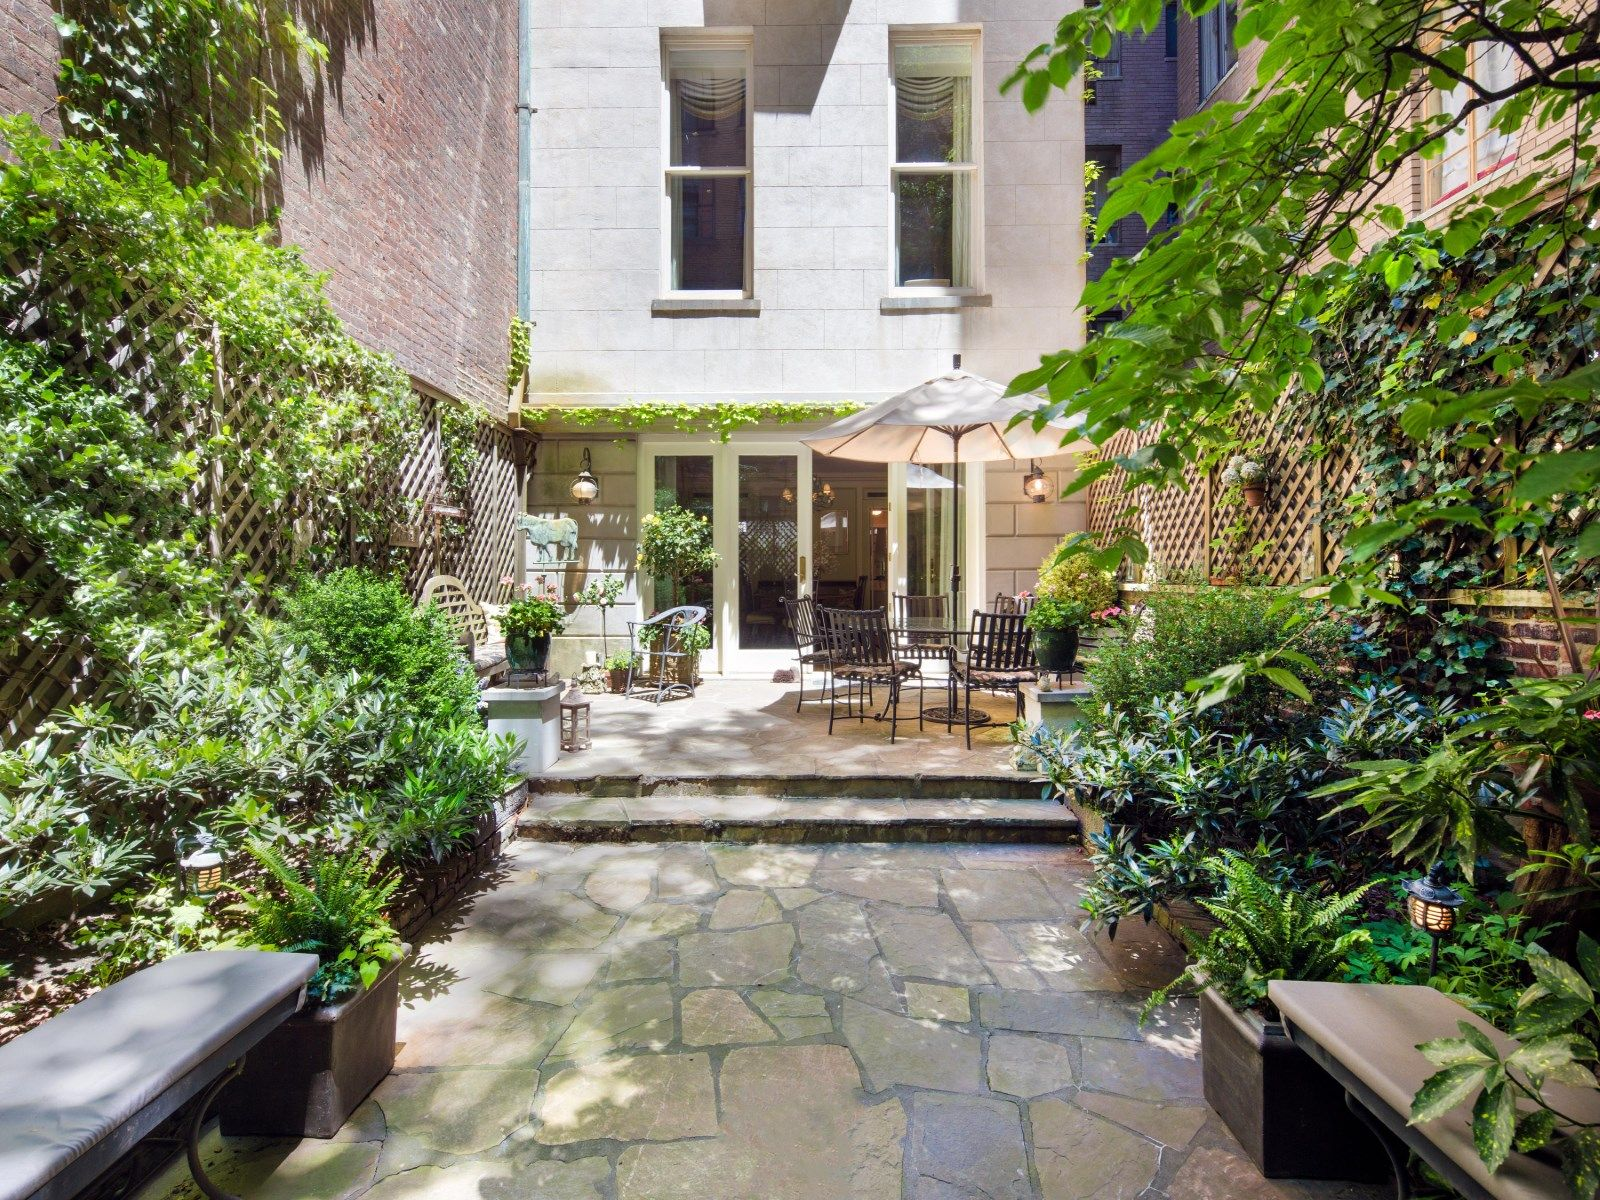 NYC 40 E 67th St garden Luxury real estate, Luxury homes